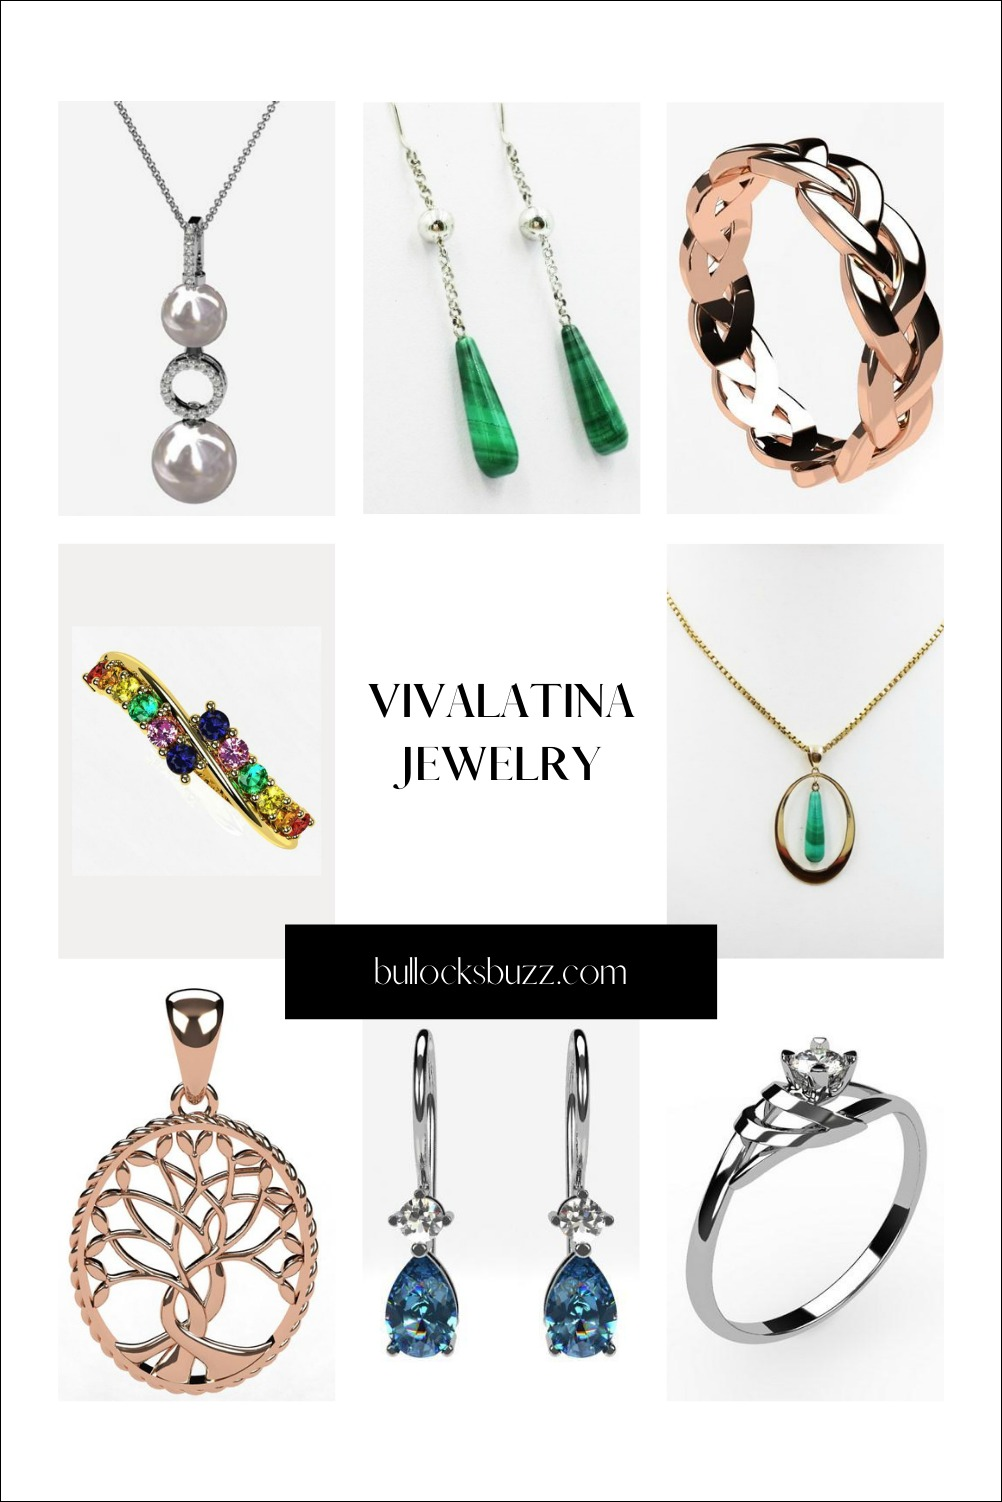 Of all the gifts you can choose, the gift of jewelry is one of the most thoughtful and memorable. And it's even more so when you give a custom piece from Vivaltina Jewelry.